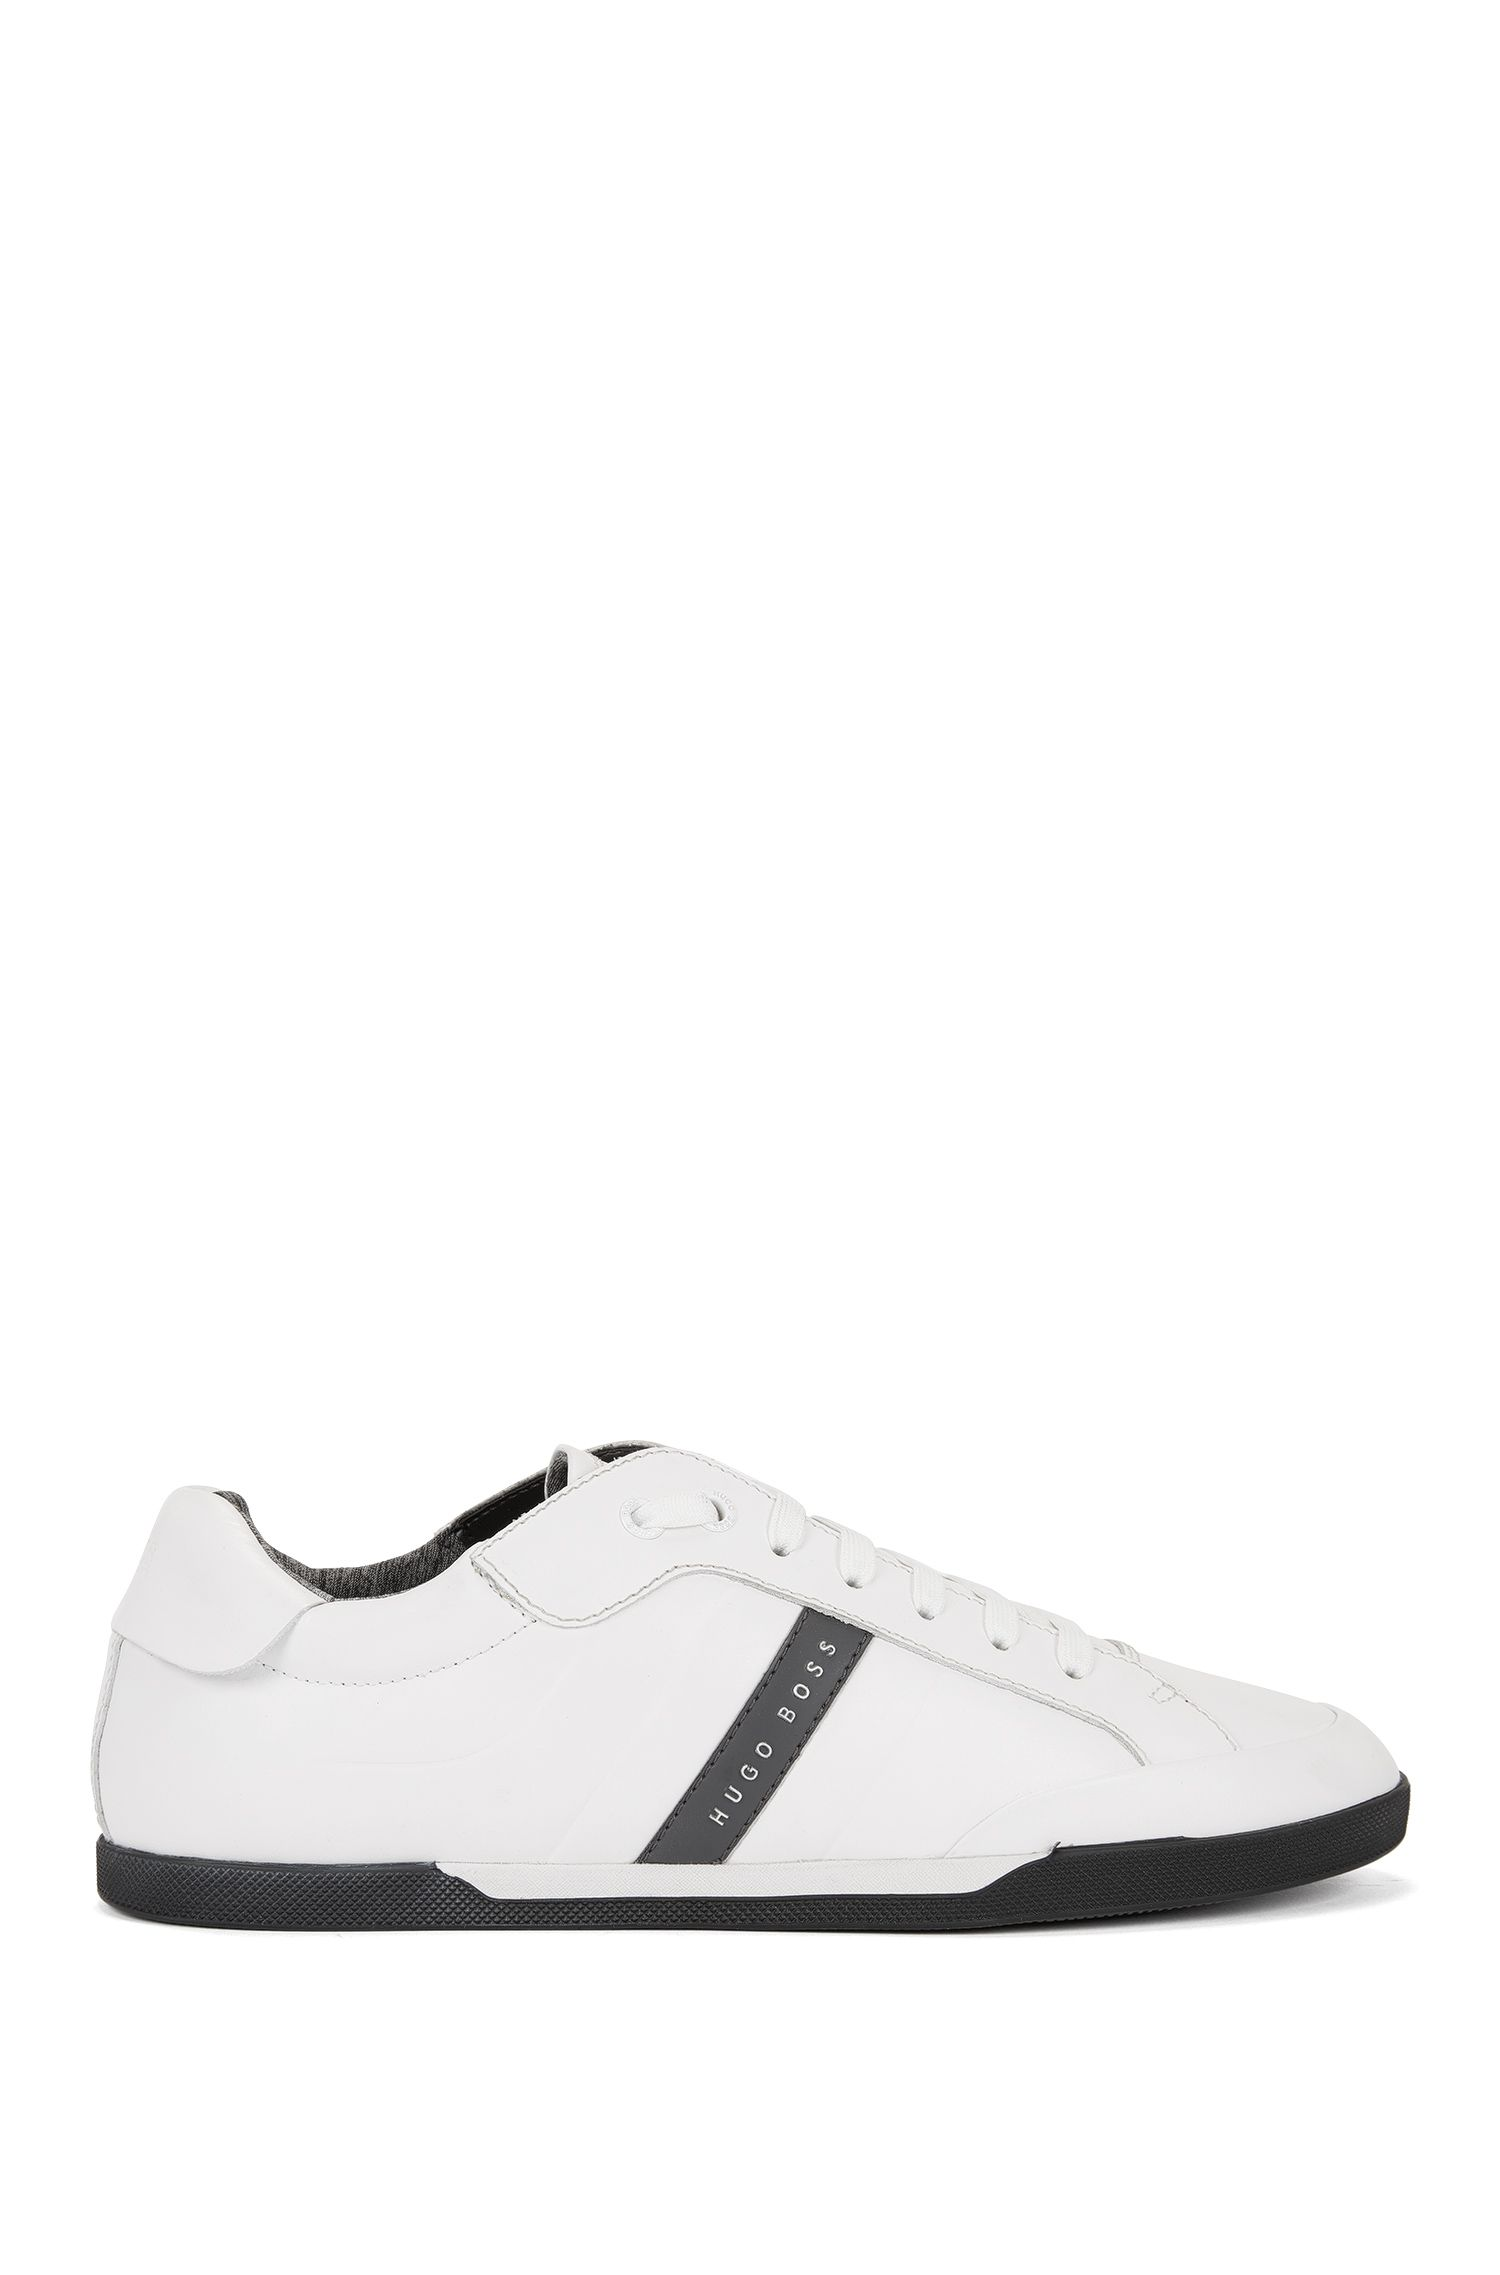 Leather Sneaker | Shuttle Tenn It